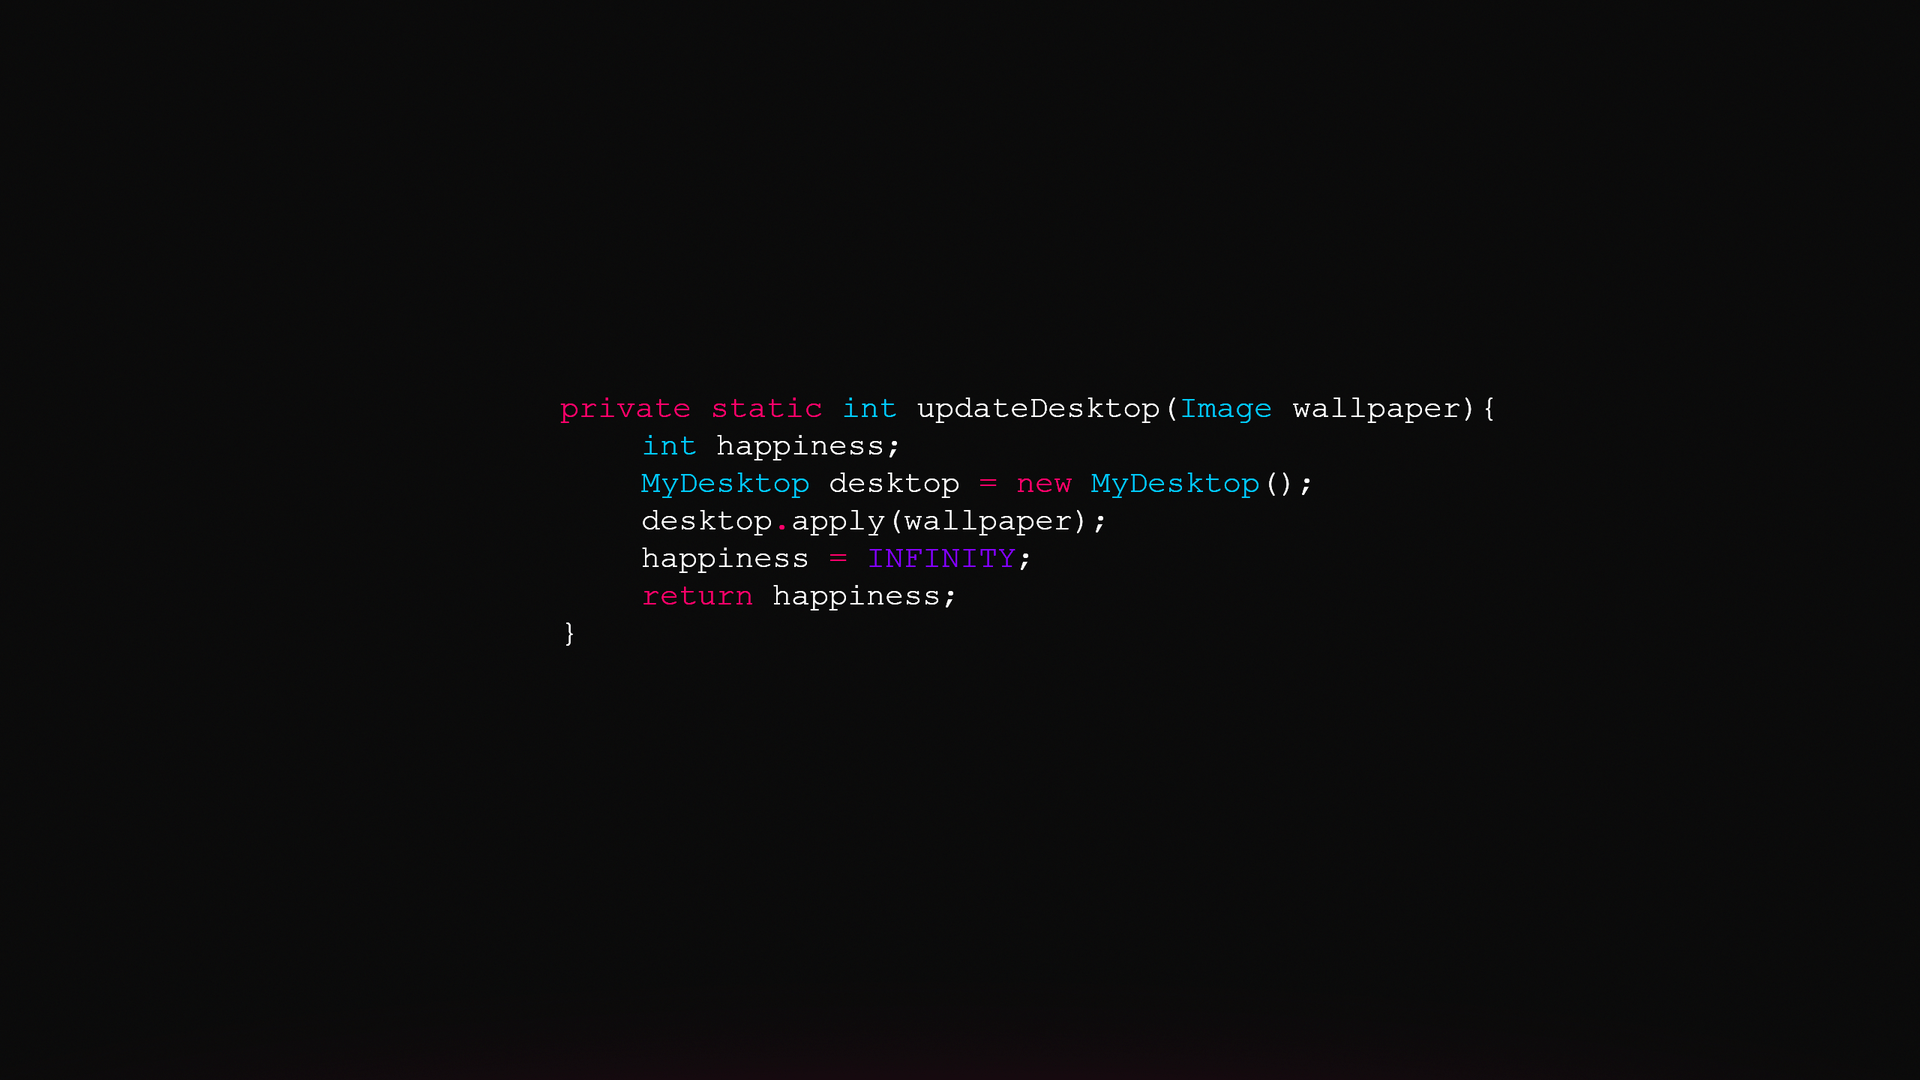 60 Funny Computer Code Wallpapers   Download at WallpaperBro 1920x1080